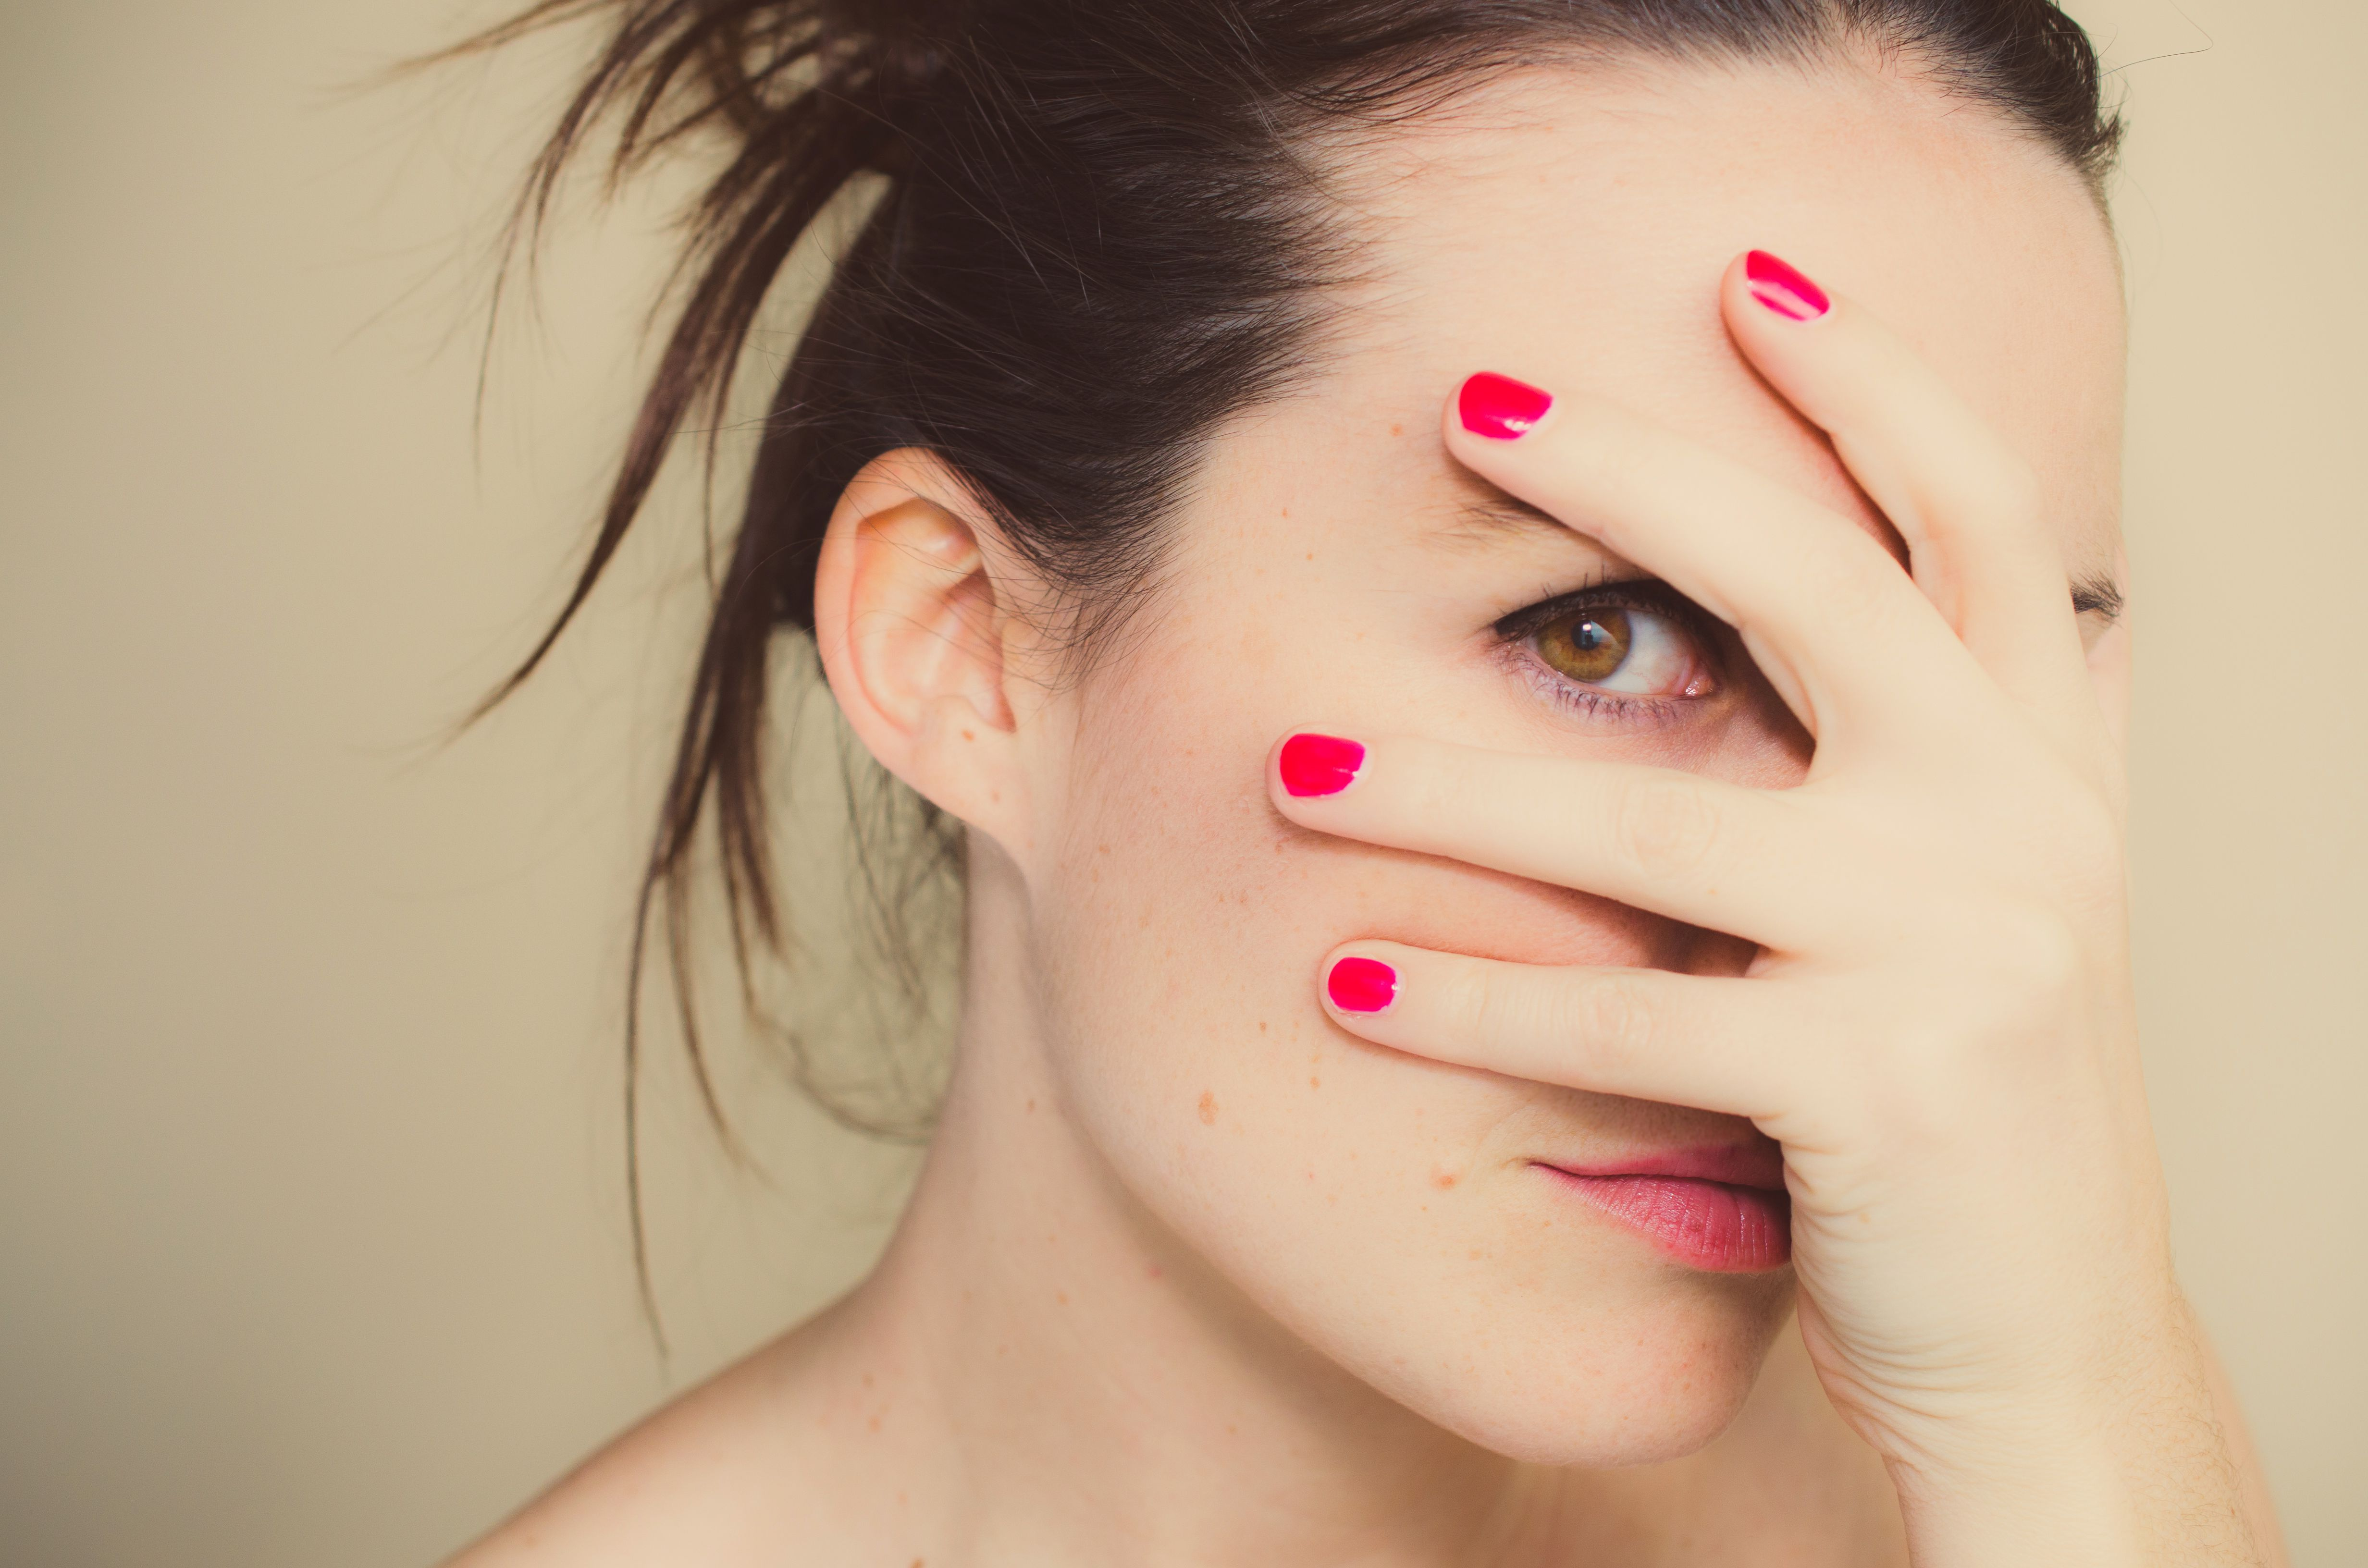 15 Infertility-Related Depression and Anxiety Symptoms